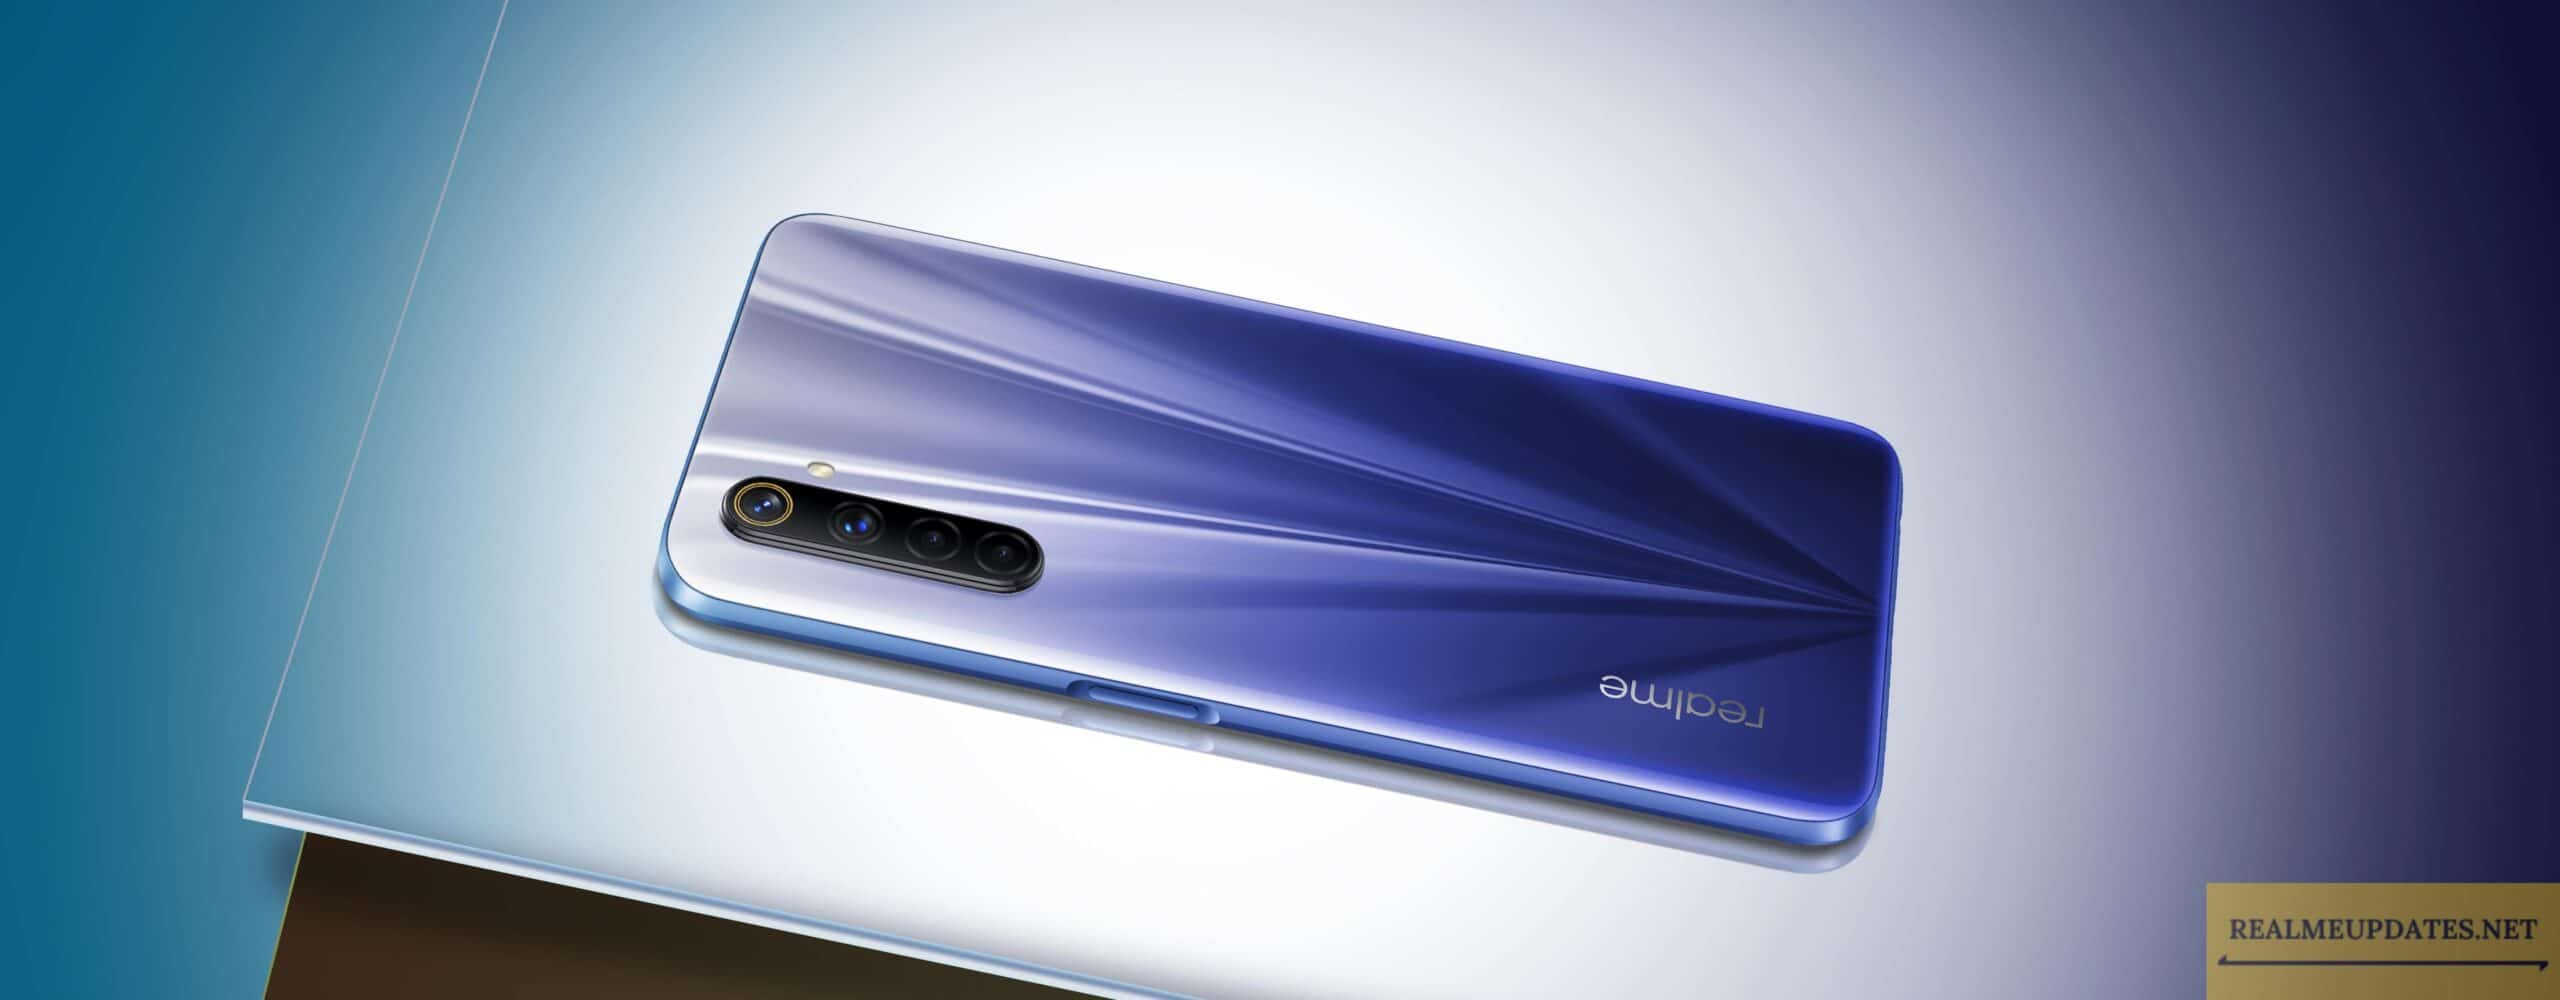 Realme 6 B.37 June 2020 Security Patch Update Brings Realme PaySa, Optimizes Camera, Improved System Stability & Much More [RMX2001_11.B.37] - Realme Updates